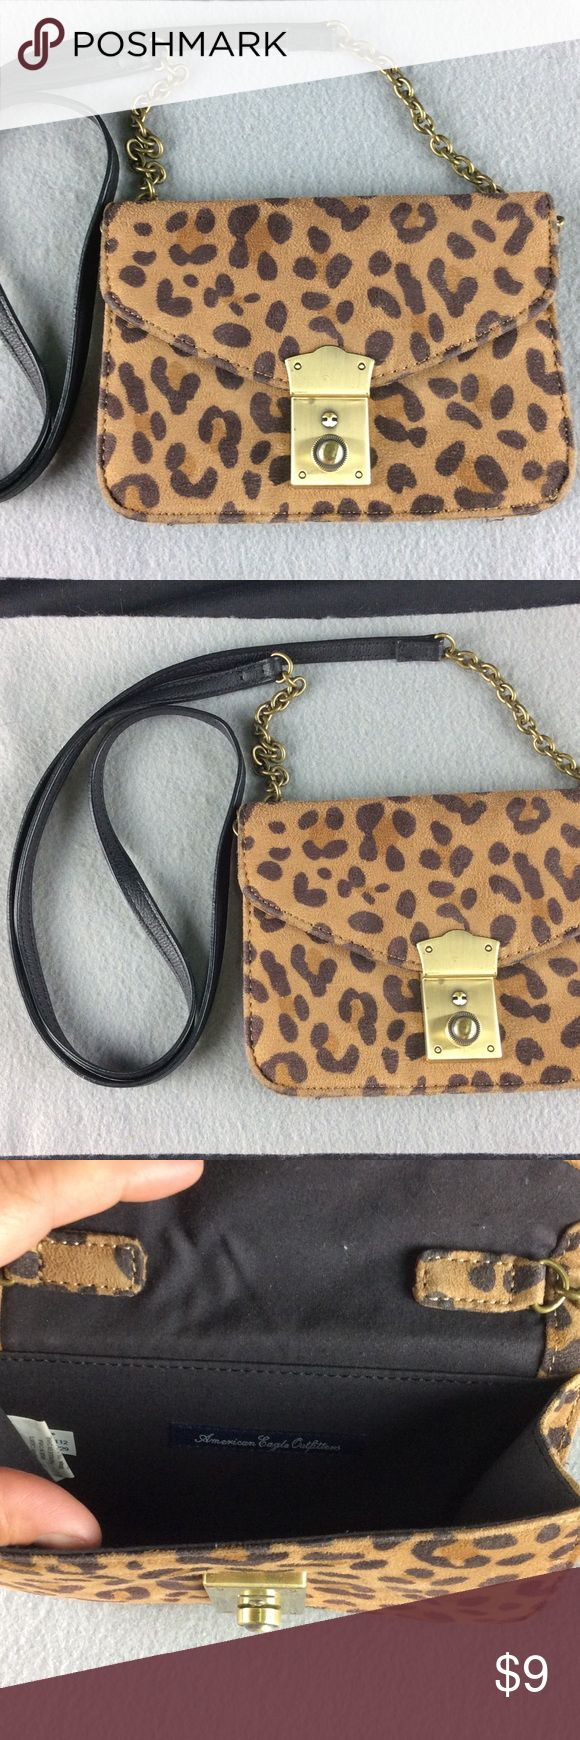 American Eagle Outfitters Animal Print Purse 👛 The strap length is 23 inches. Super Cute cross over body Purse ❤️️ Bundle 3 or more items and Save 20% ❤️️ Any questions let. Me know. 😀 American Eagle Outfitters Bags Crossbody Bags